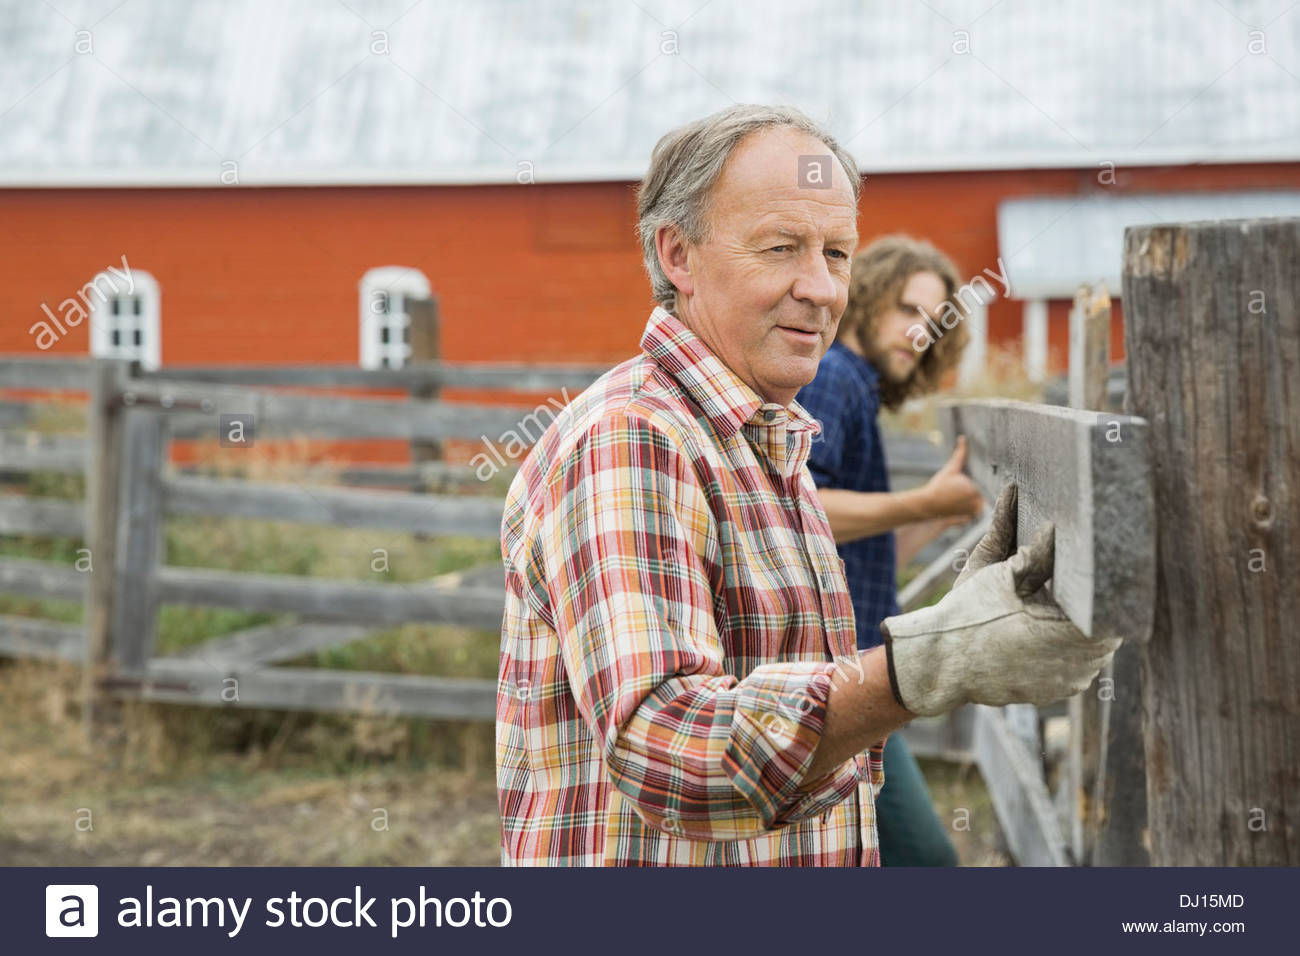 Father with son adjusting fence plank on farm - Stock Image